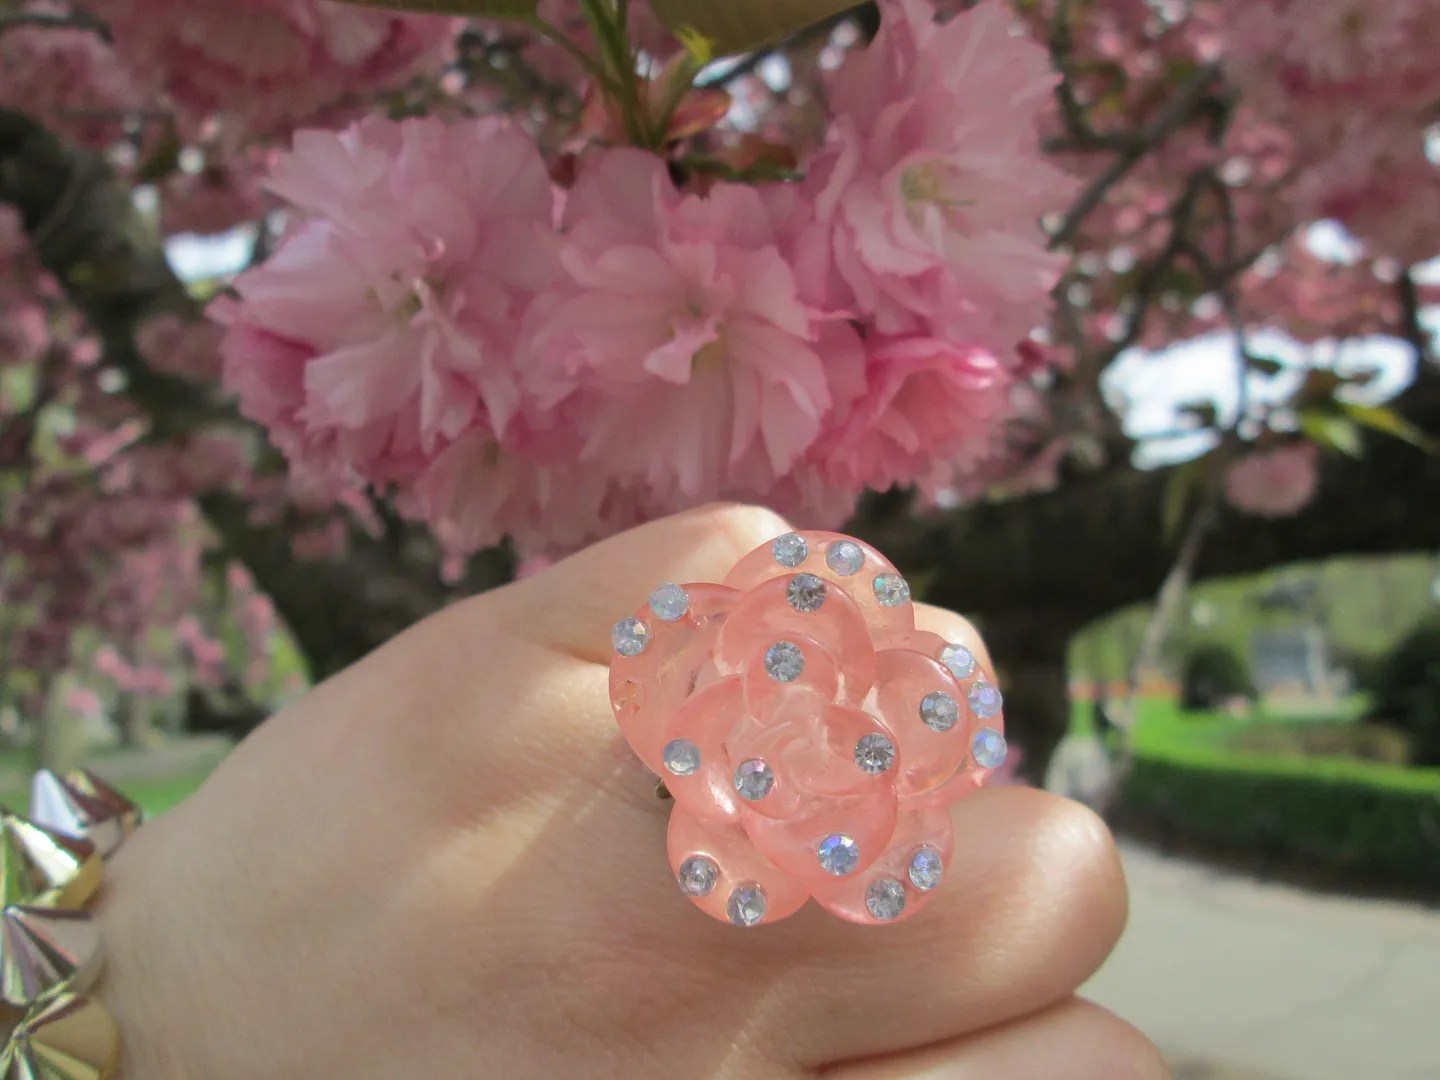 pink rose rhinestone statement ring next to pink cherry blossoms